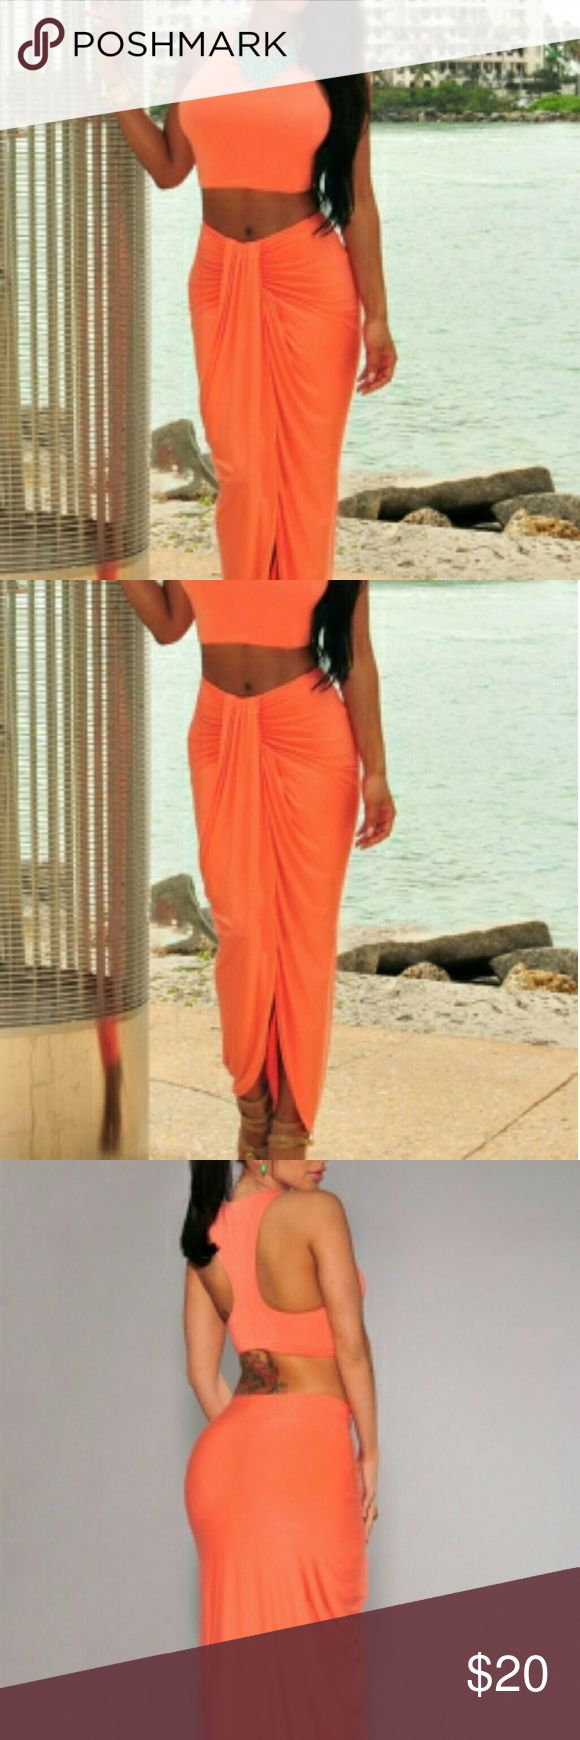 Orange Cascading Two Piece Skirt Set Material: Polyester and Spandex  Sizes available: Small, Medium and Large   SIZE CHART Small Bust: 32 - 35 inches Waist: 24 - 27 inches Hips: 34.5 - 37.5 inches  Medium Bust: 36 - 38 inches Waist: 27 - 30 inches Hips: 37.5 - 40 inches  Large Bust: 38.5 inches Waist: 30 - 35 inches Hips: 40 - 45.5 inches Dresses High Low